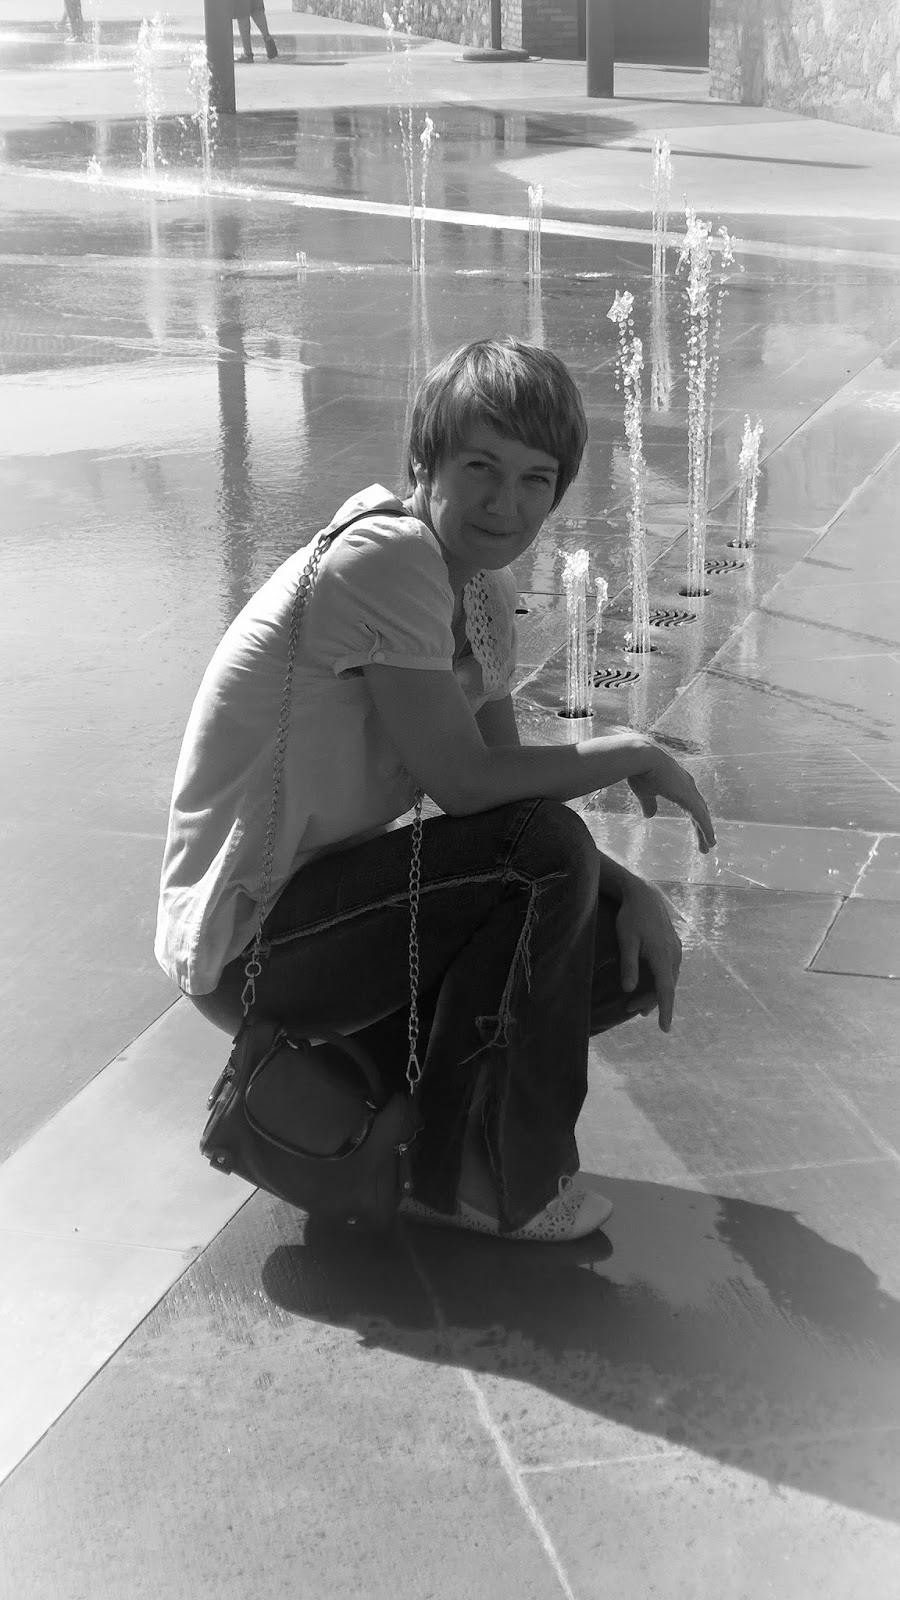 kneeling in front of the water fountain